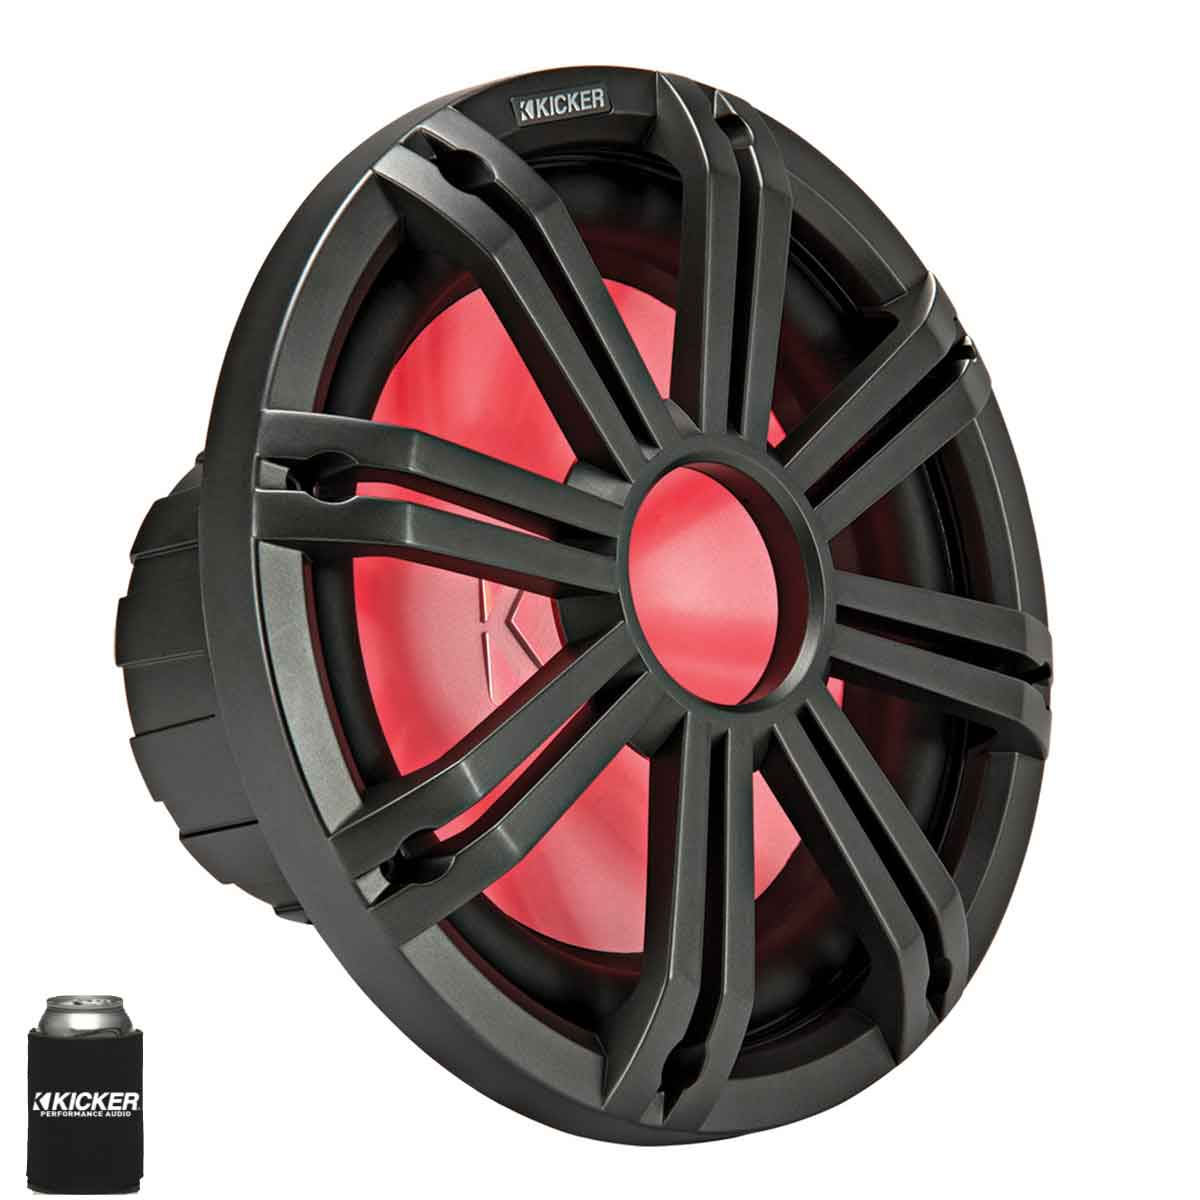 """Kicker KMF124 12"""" Marine Subwoofer with LED Charcoal Grill 2 Ohm for Free Air Applications"""